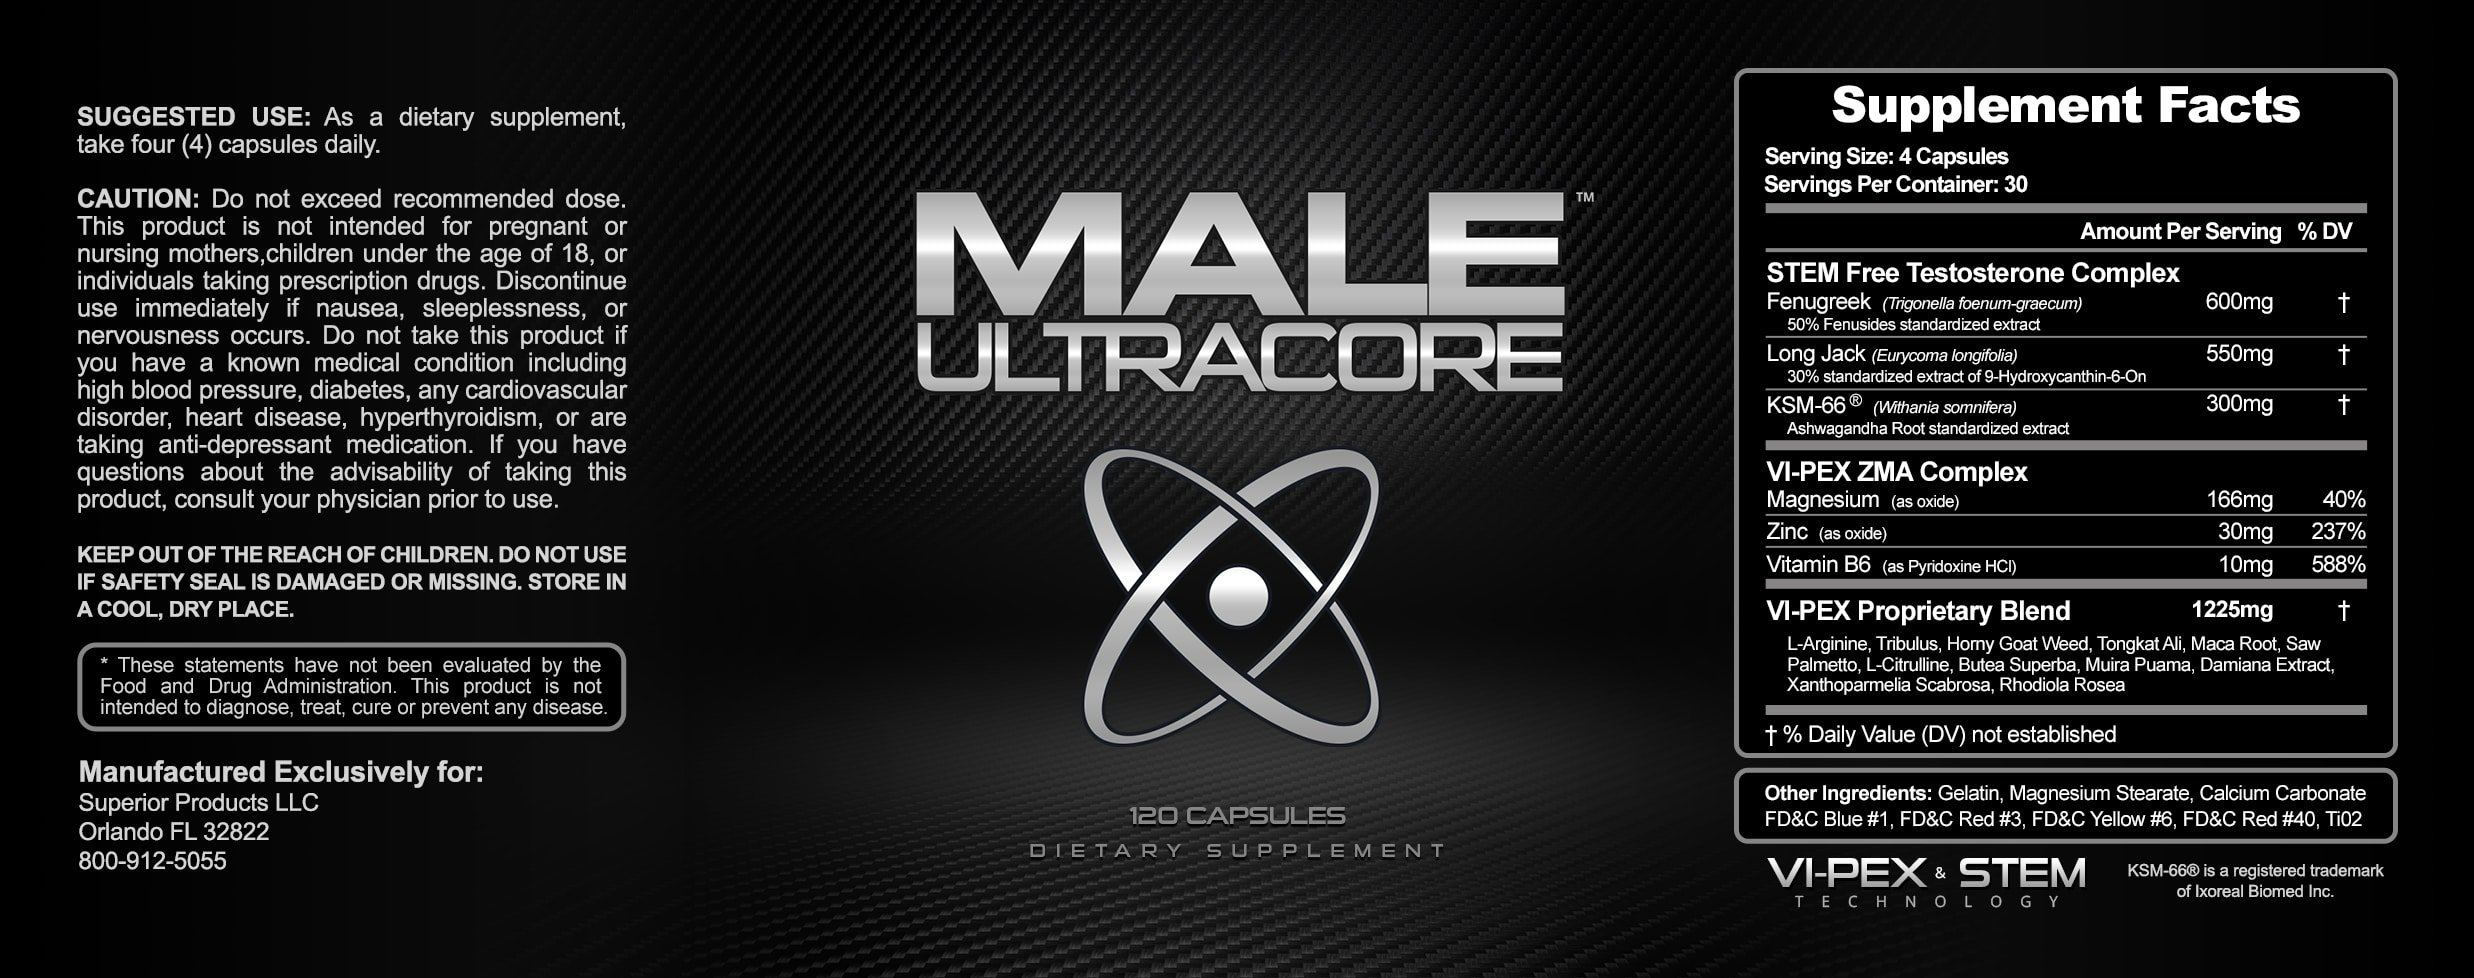 Male Ultracore Ingredients